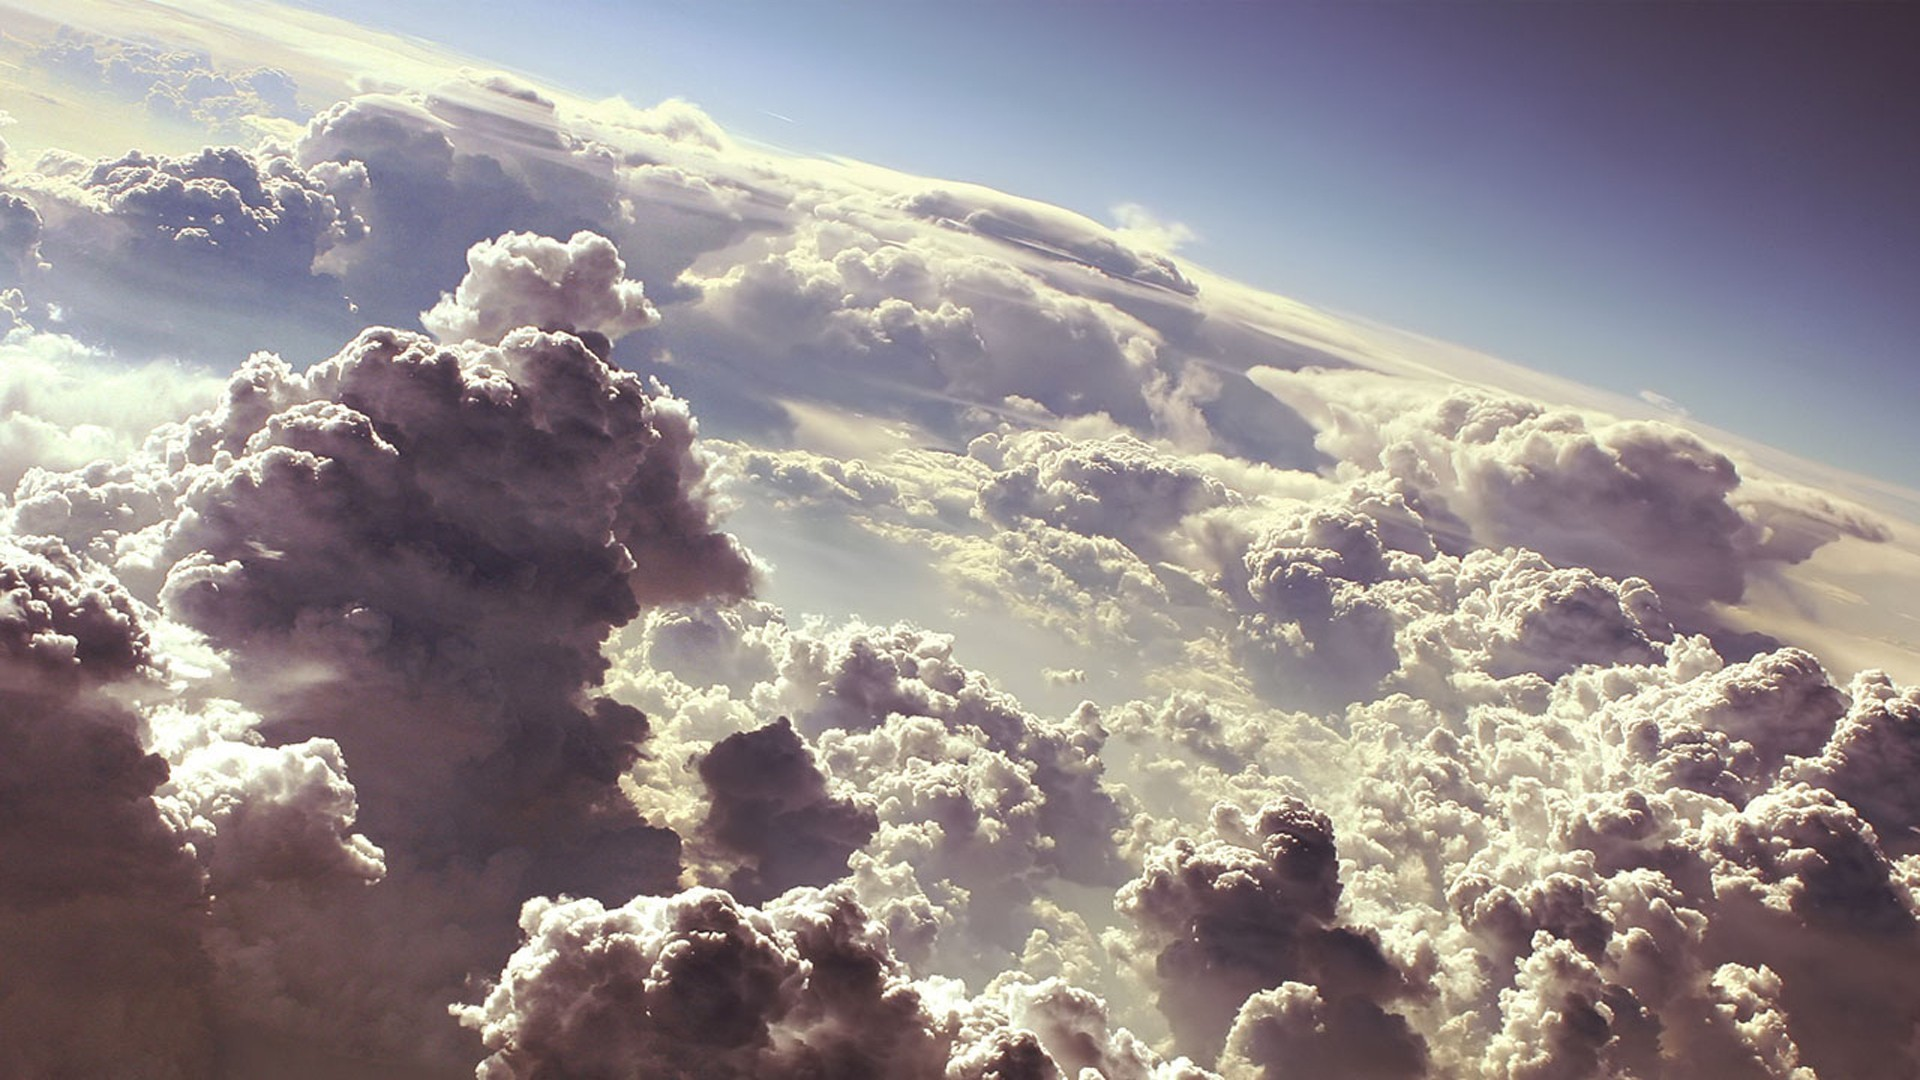 Download Cloud Background Images HD Wallpaper of Nature .